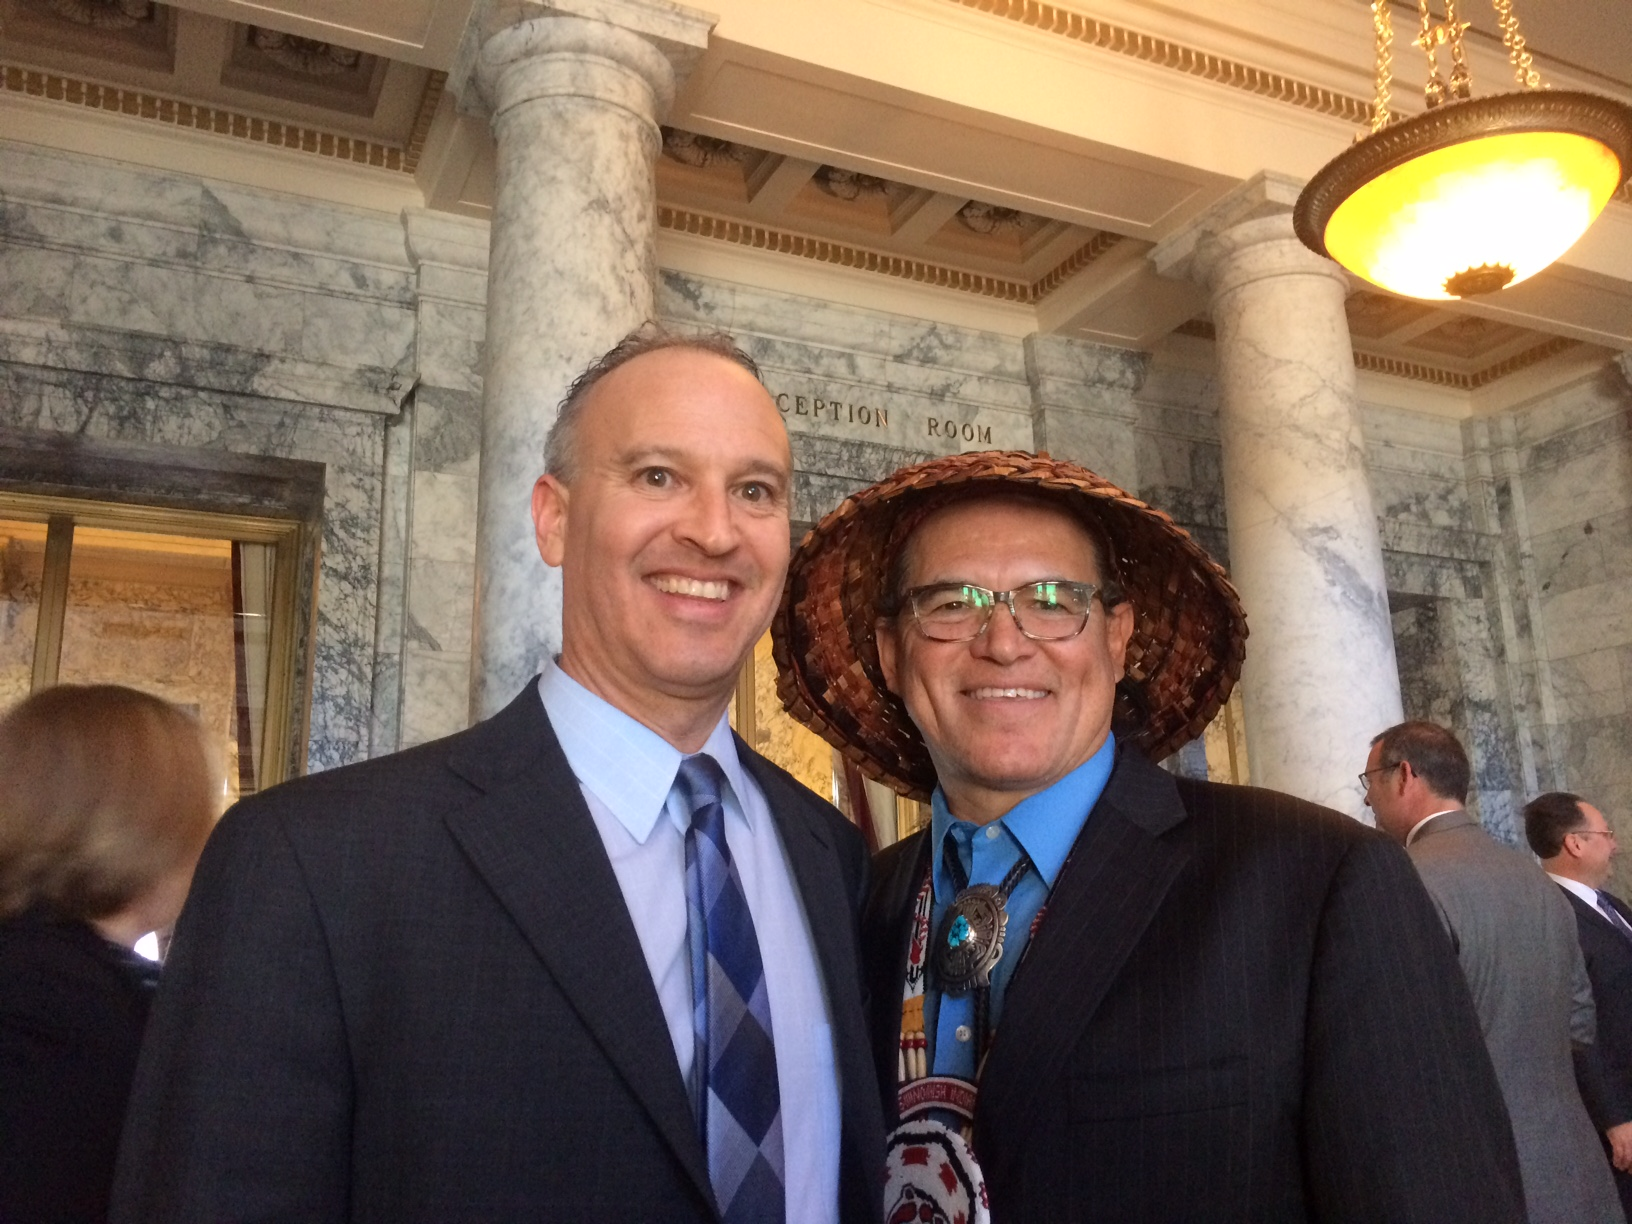 Deputy director Jon Gould with Swinomish Indian Tribal Community chairman and president of the National Congress of American Indians, Brian Cladoosby, at the bill signing ceremony for Senate Bill 5079.